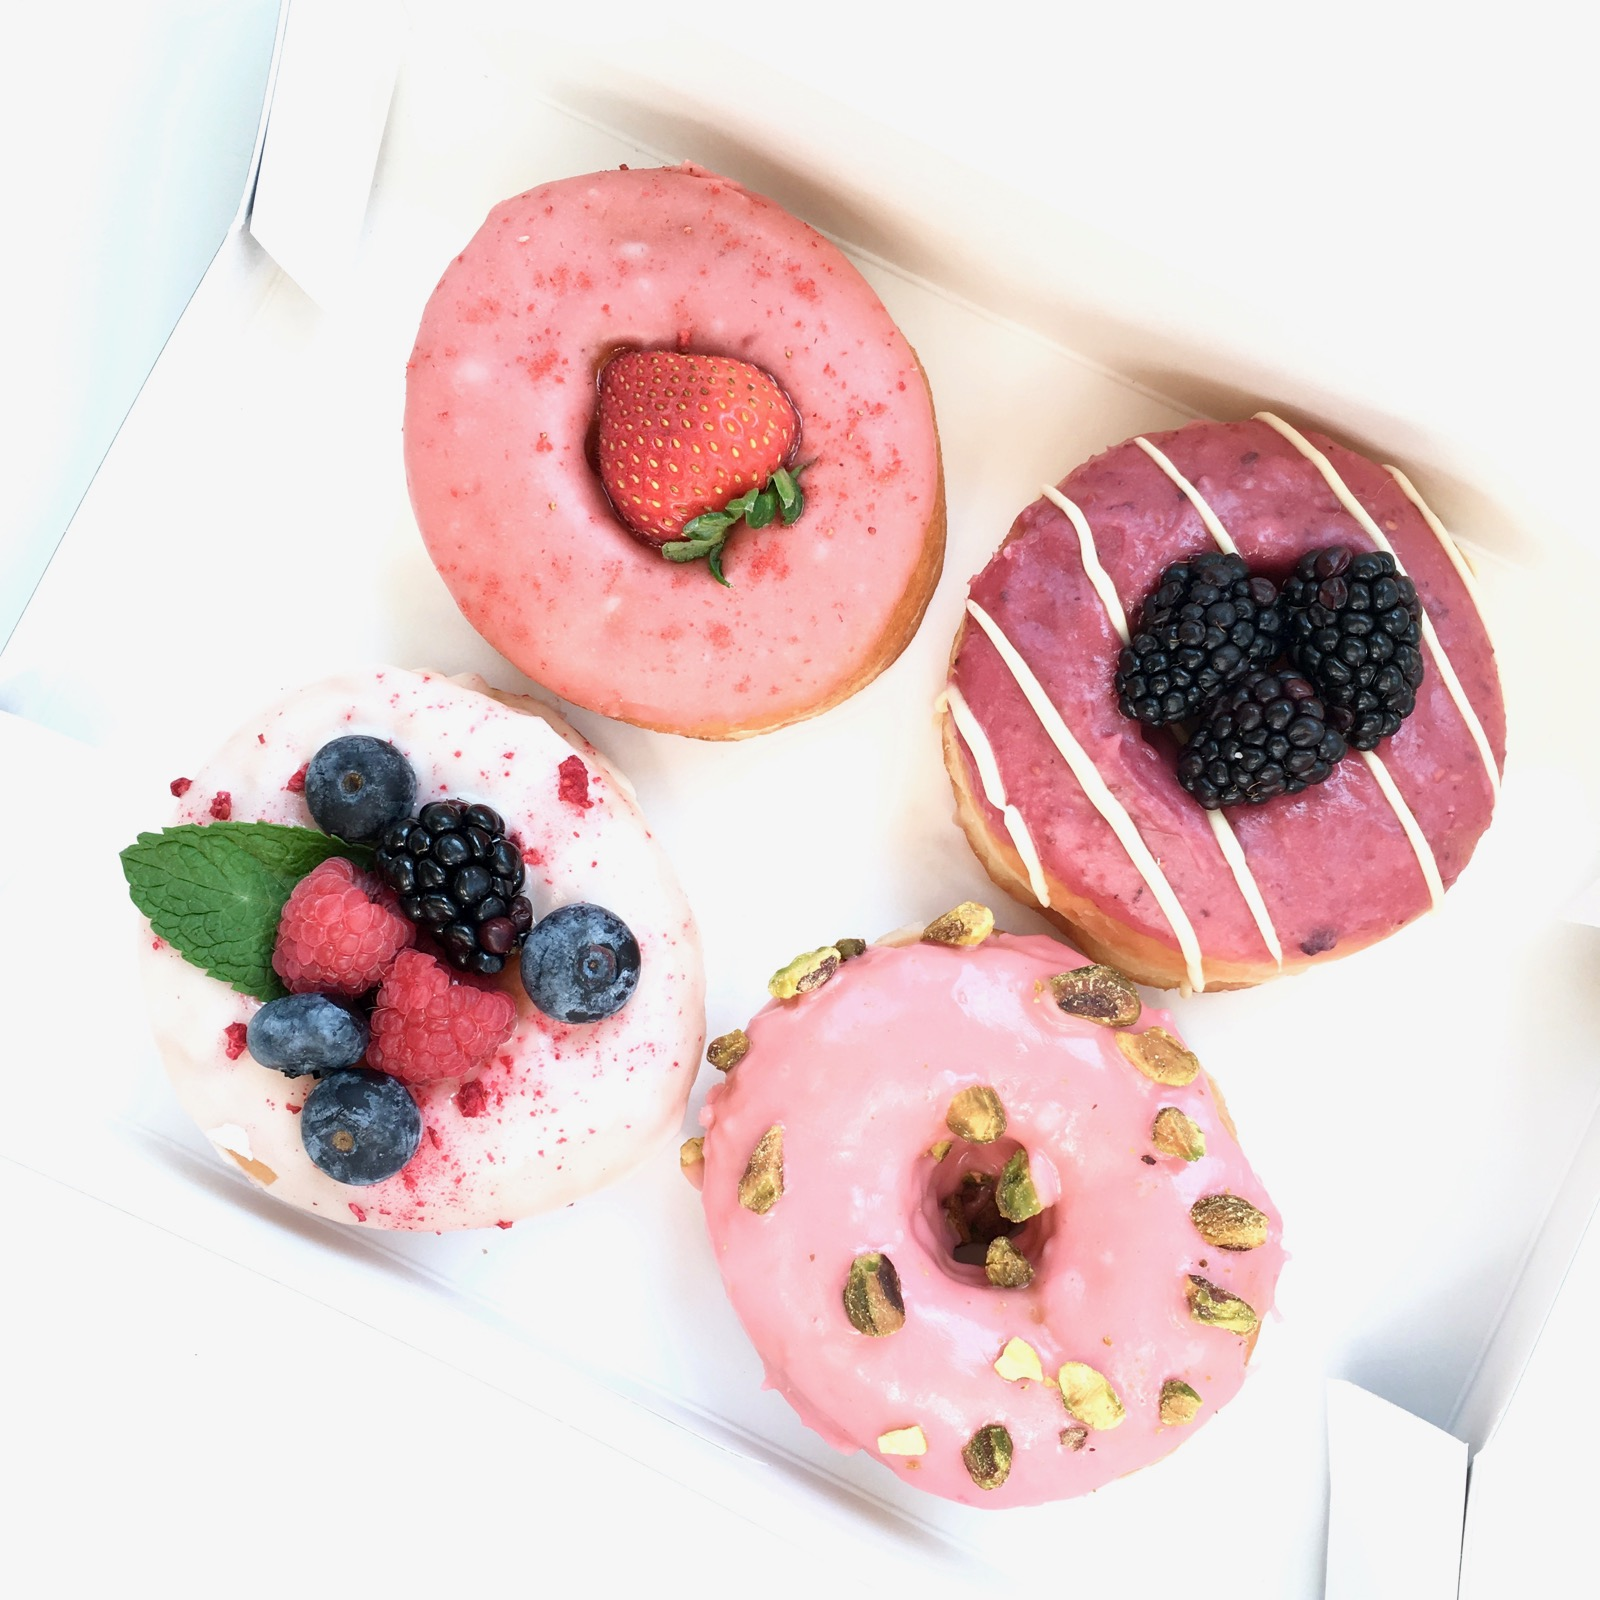 Best Donuts in Los Angeles